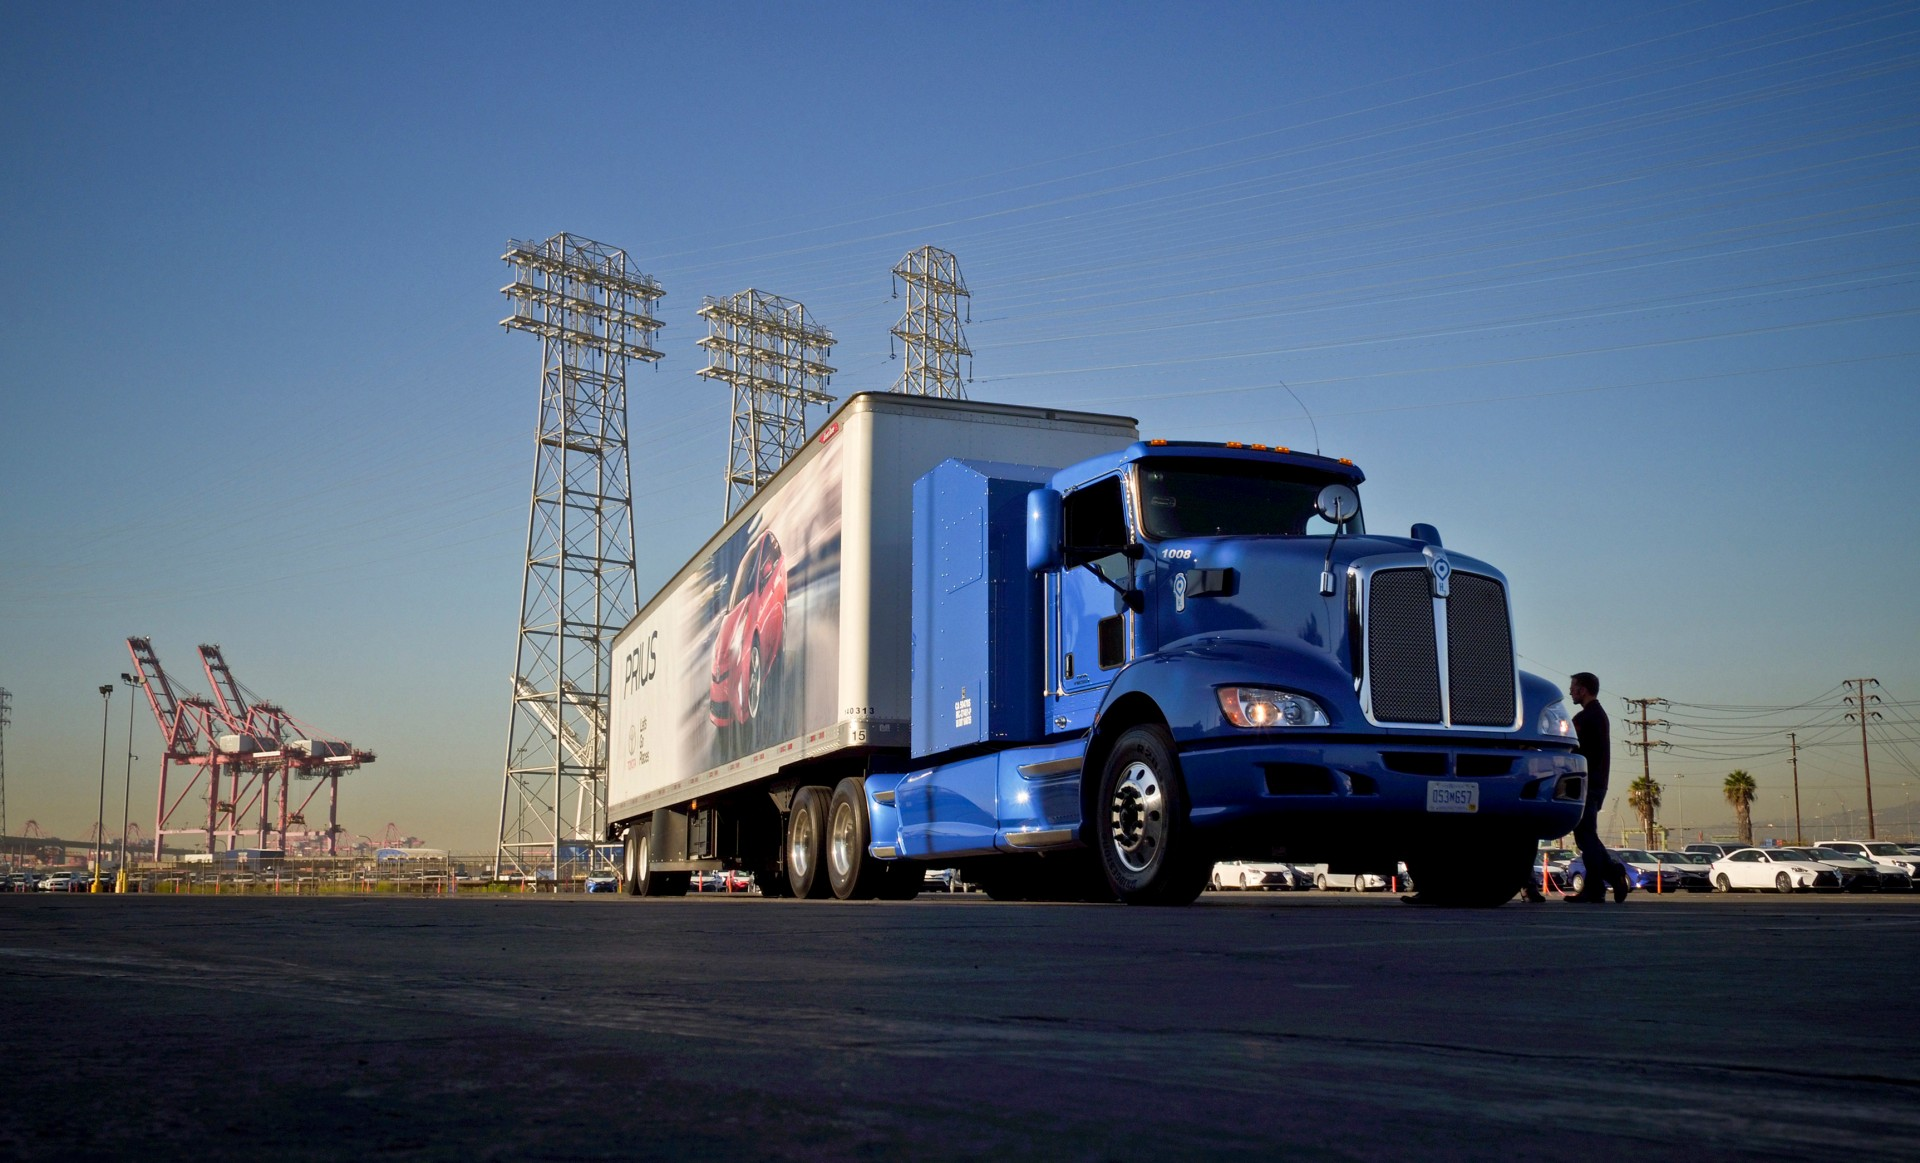 fc_truck_-_la_-long_beach_2